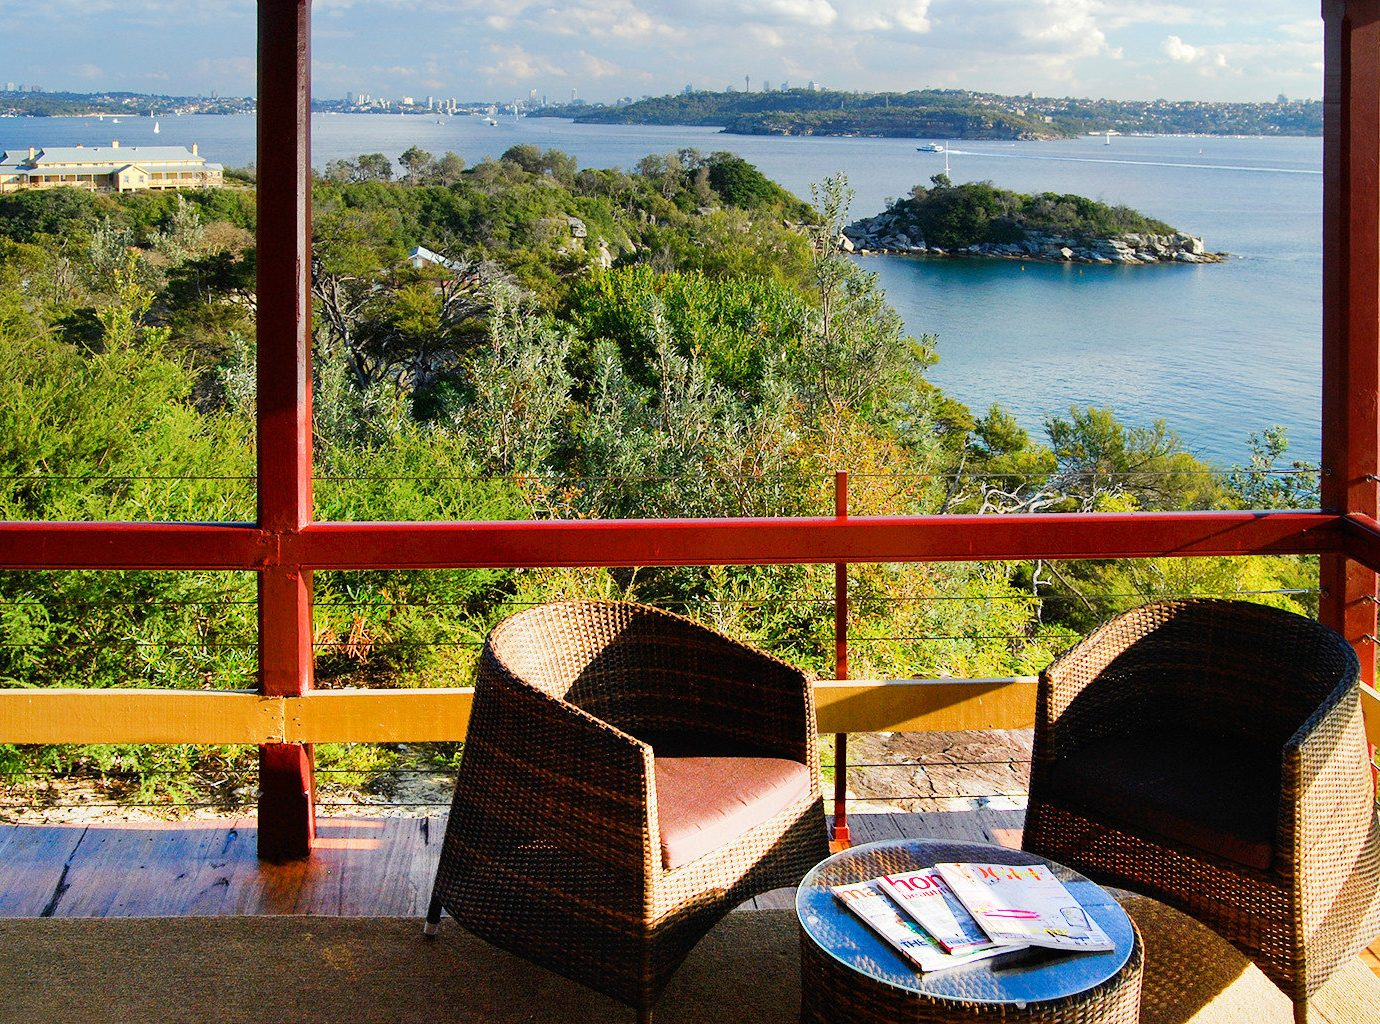 Balcony Budget Lounge Outdoors Scenic views Waterfront sky tree outdoor leisure vacation tourism Beach estate Resort Sea travel overlooking Deck